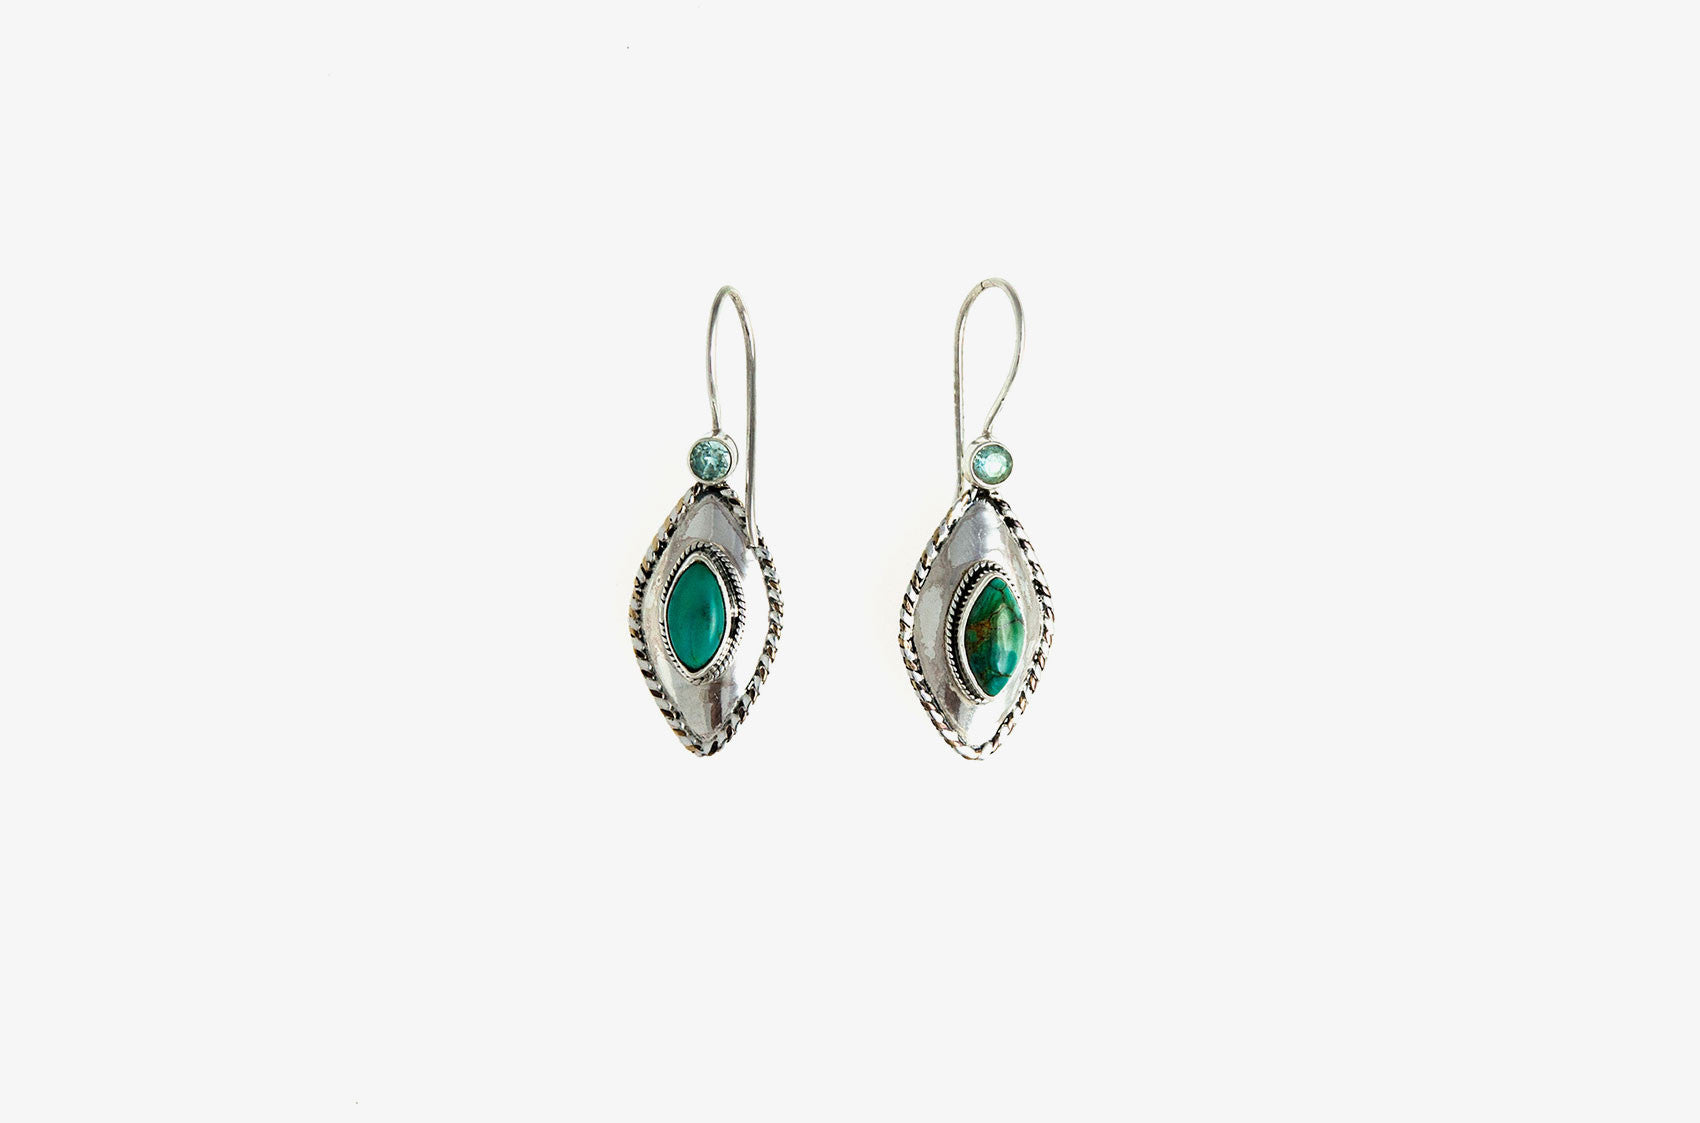 Silver & Stone. Topaz and turquoise earrings